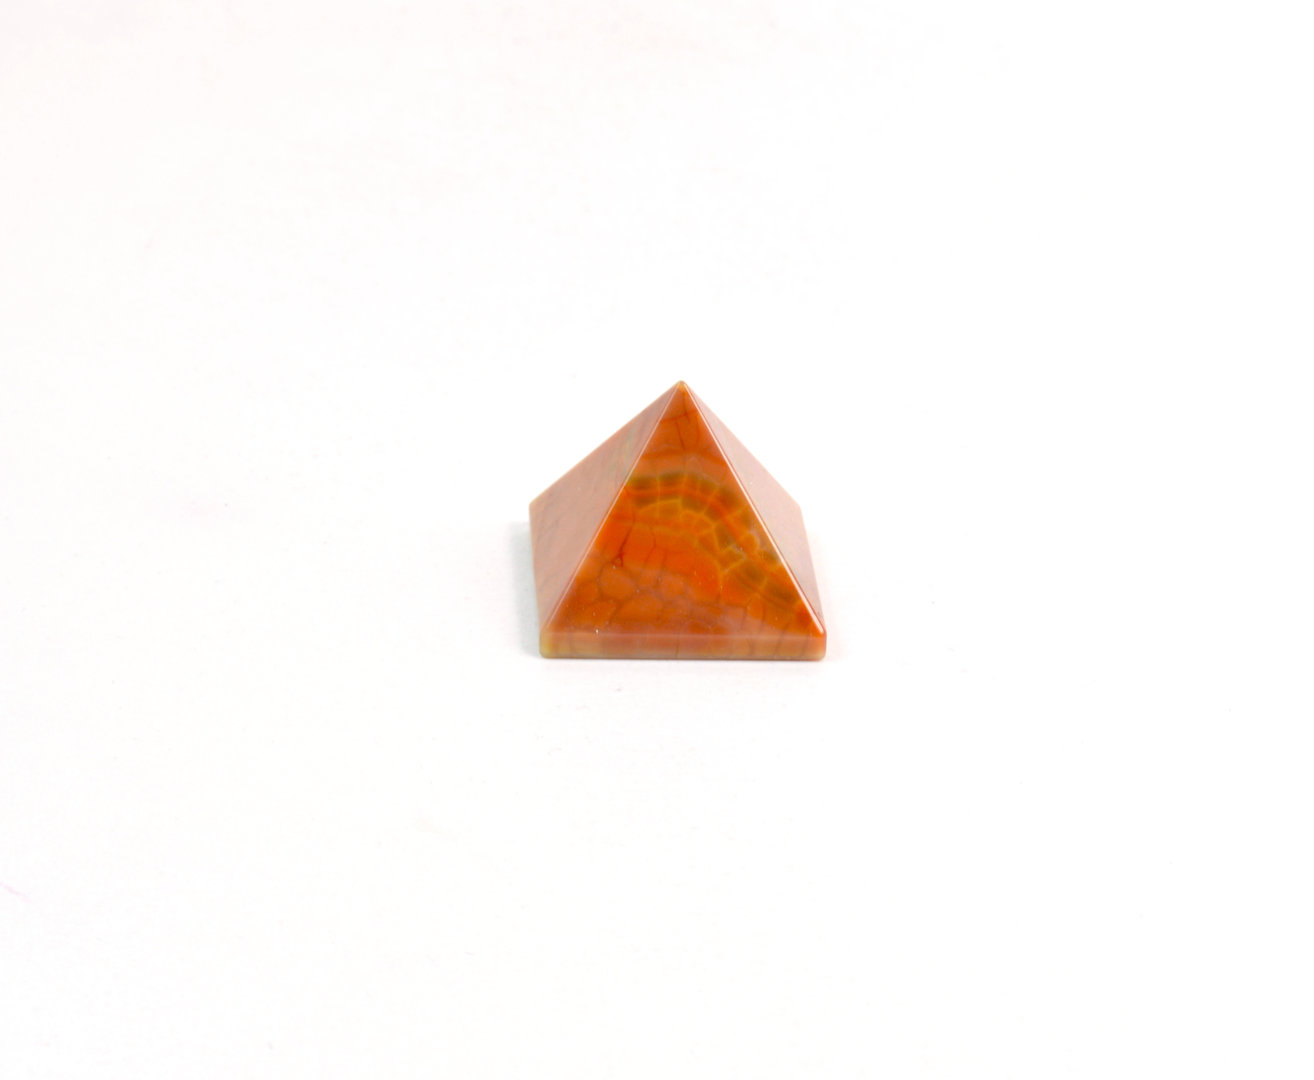 Piramide in Agata di Fuoco (base: 3x3 cm circa).Soprammobile,Idea Regalo